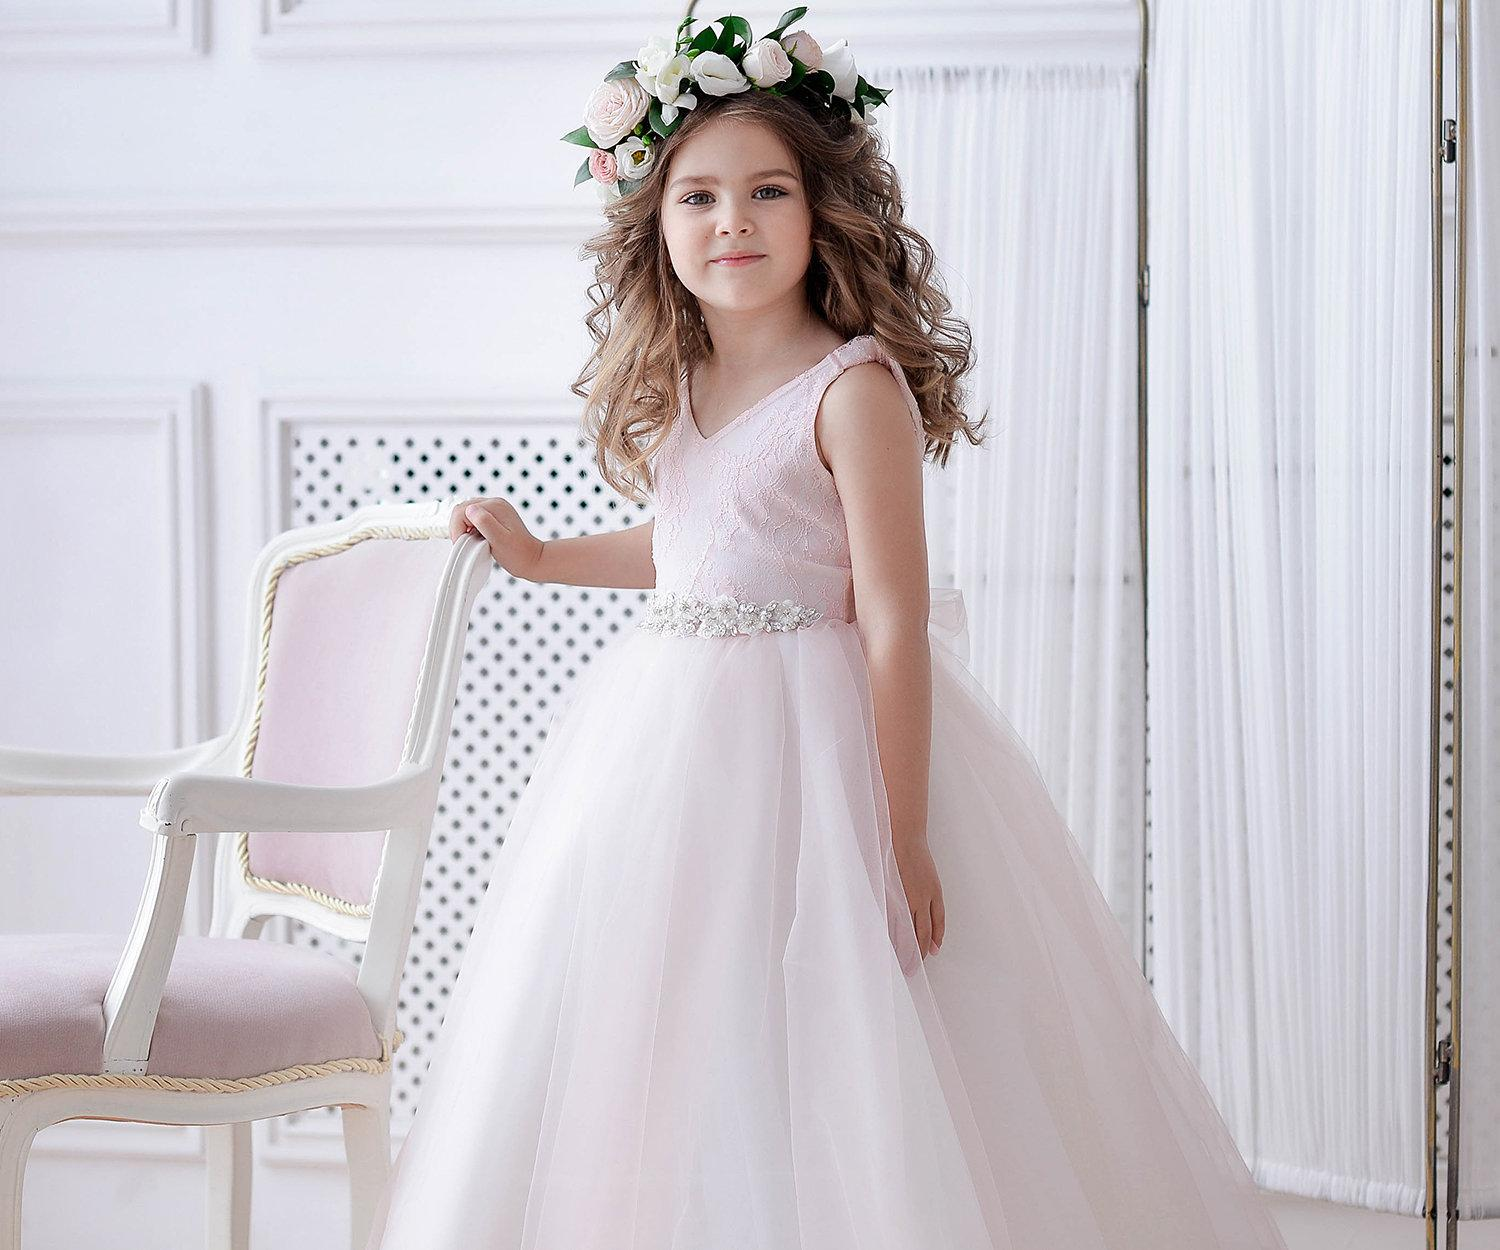 b01094c12fc White Blush Flower Girl Dress Tulle Pink Bridesmaid Baby Little Girl  Special Occasion Tutu Wedding Toddler Formal Occasion Party Dresses Toddler Flower  Girl ...